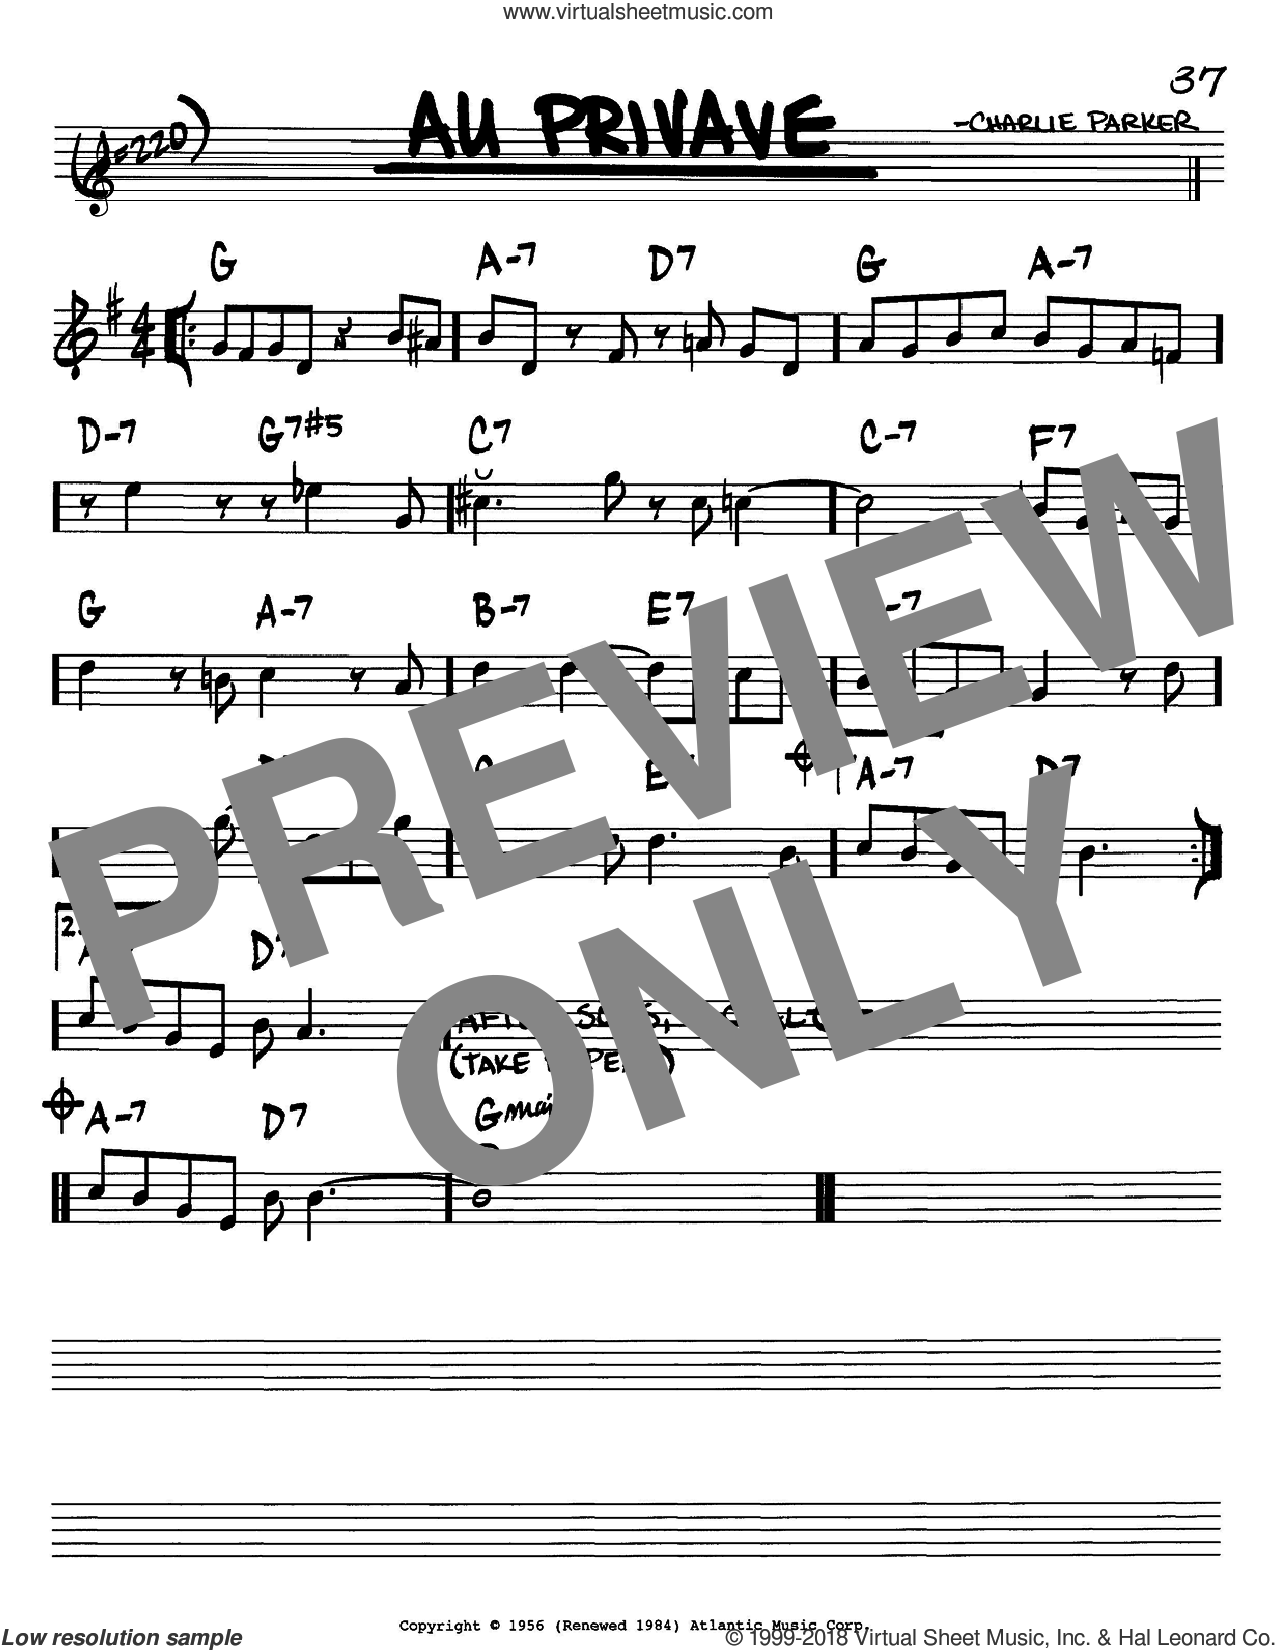 Au Privave sheet music for voice and other instruments (Bb) by Charlie Parker